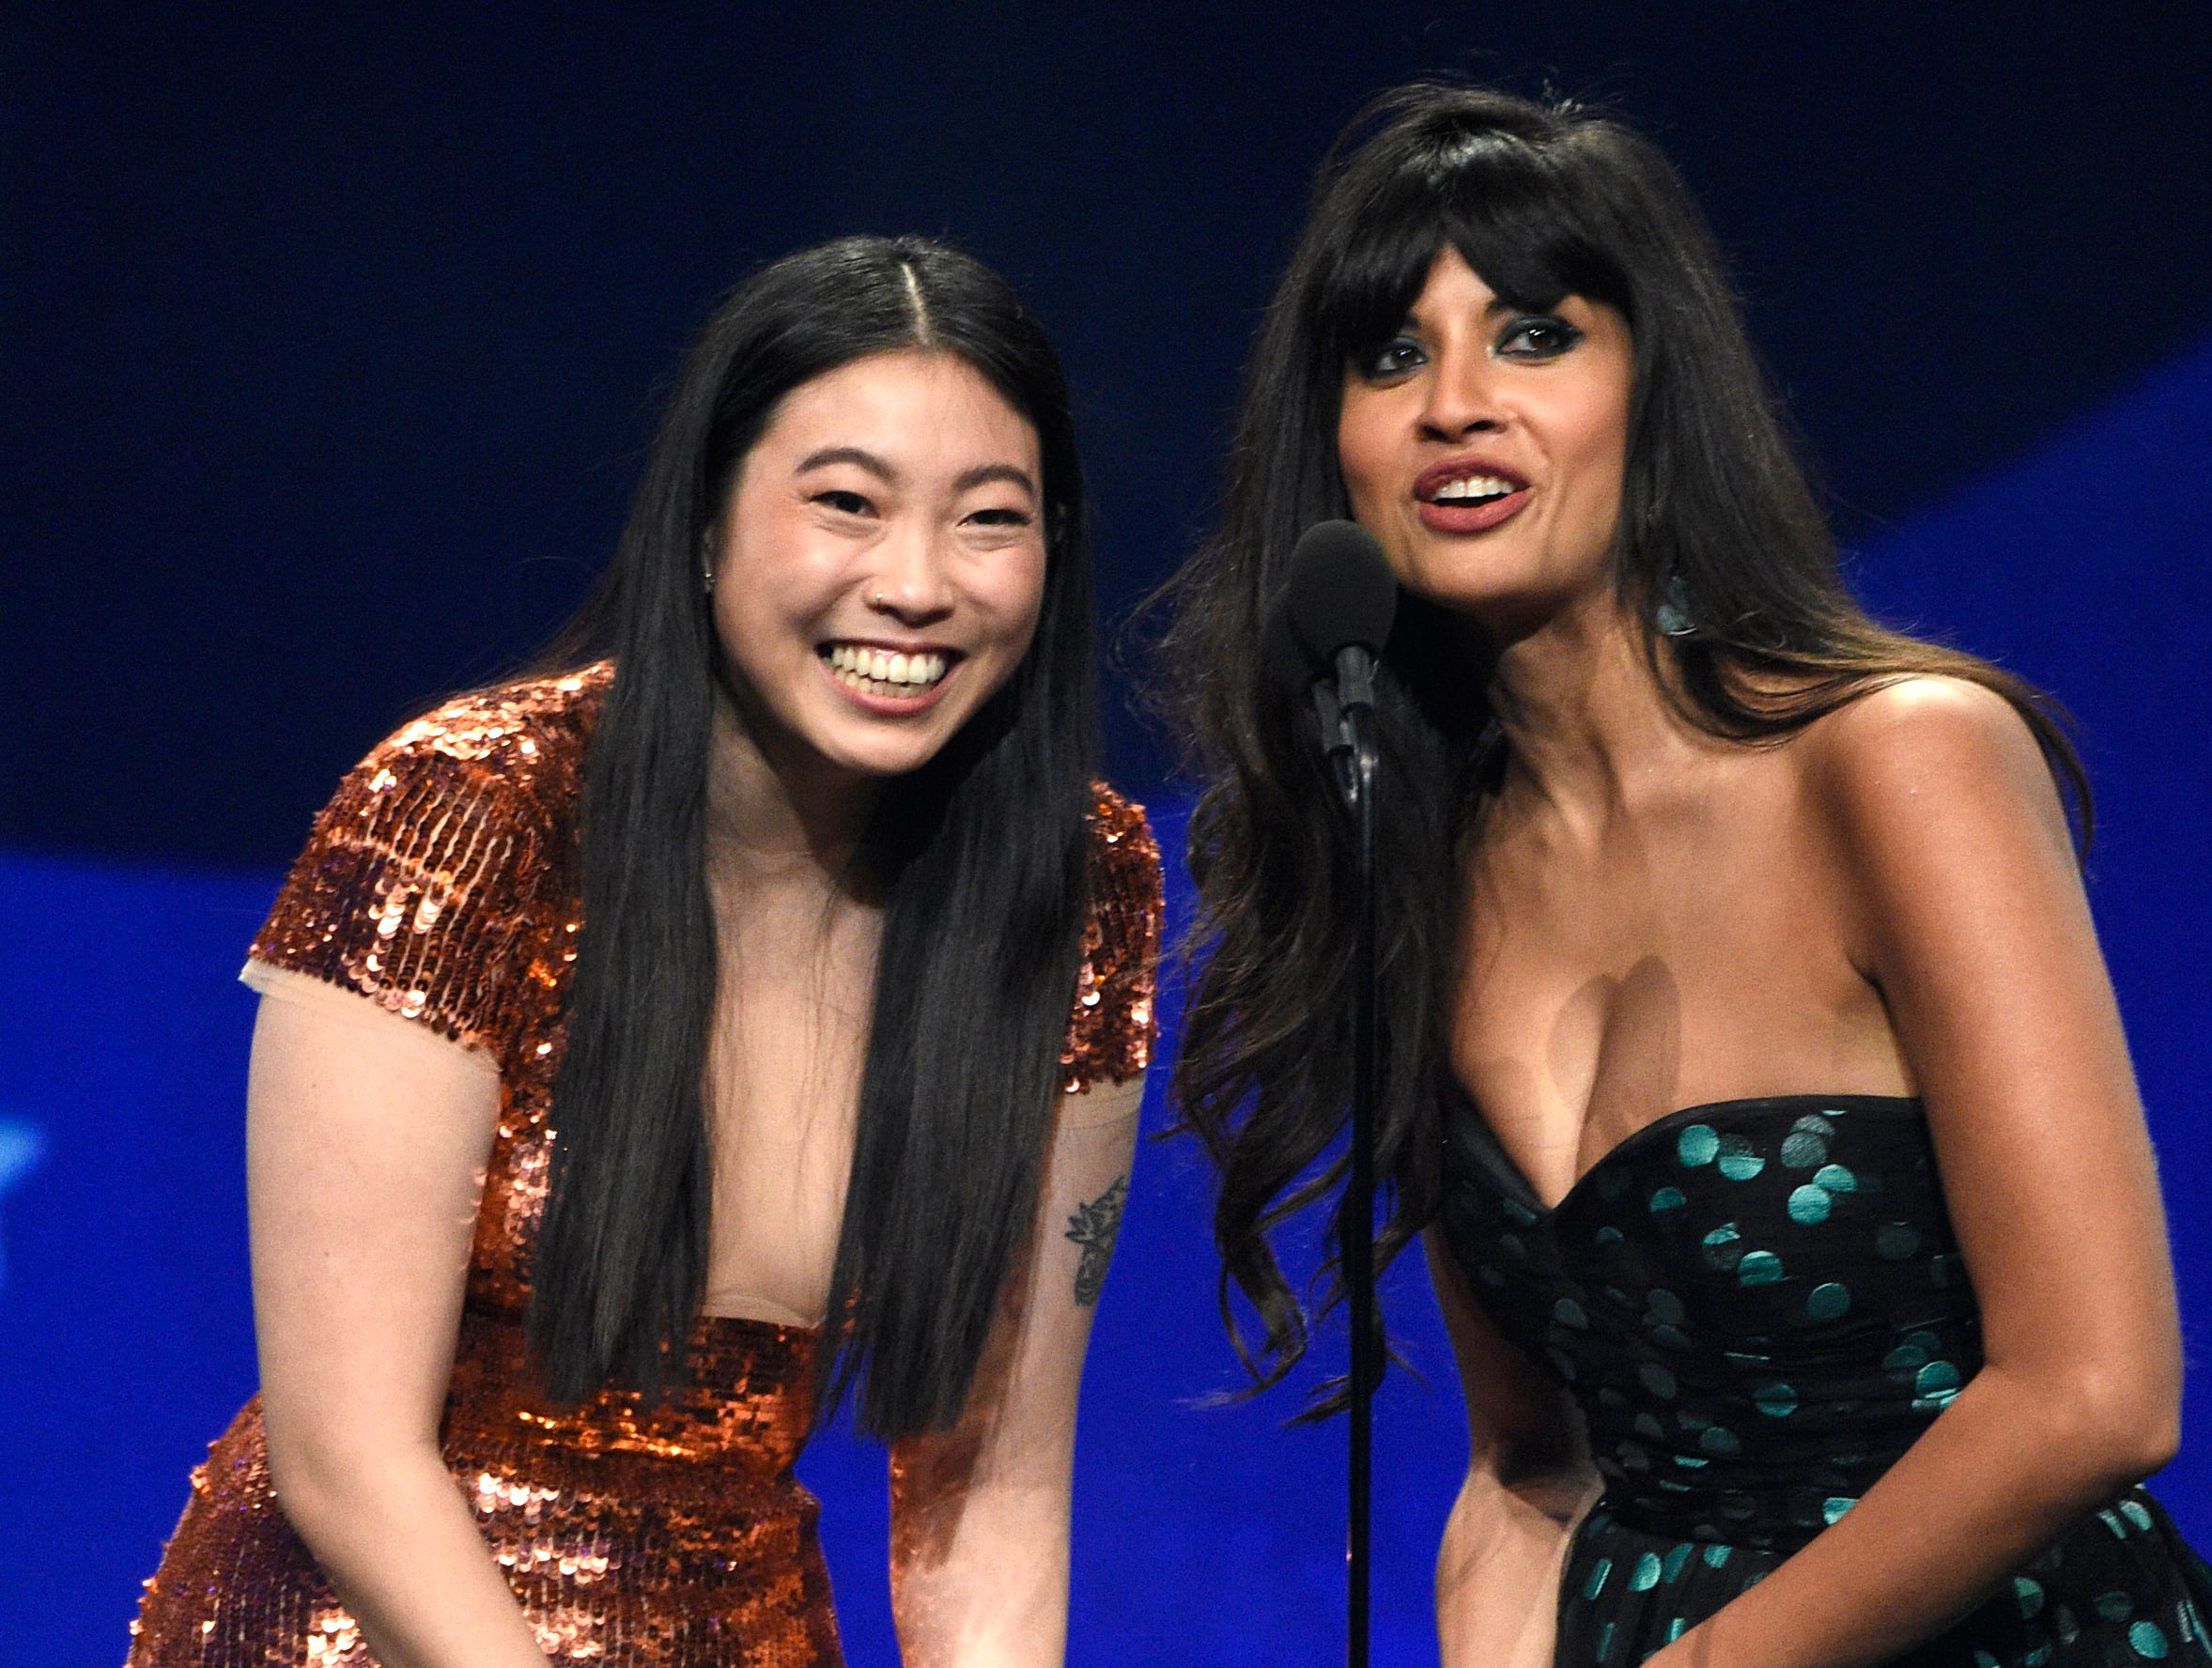 Awkwafina, left, and Jameela Jamil present the award for best actress in a drama series at the 24th annual Critics' Choice Awards on Sunday, Jan. 13, 2019, at the Barker Hangar in Santa Monica, Calif. (Photo by Chris Pizzello/Invision/AP) ORG XMIT: CAPM465